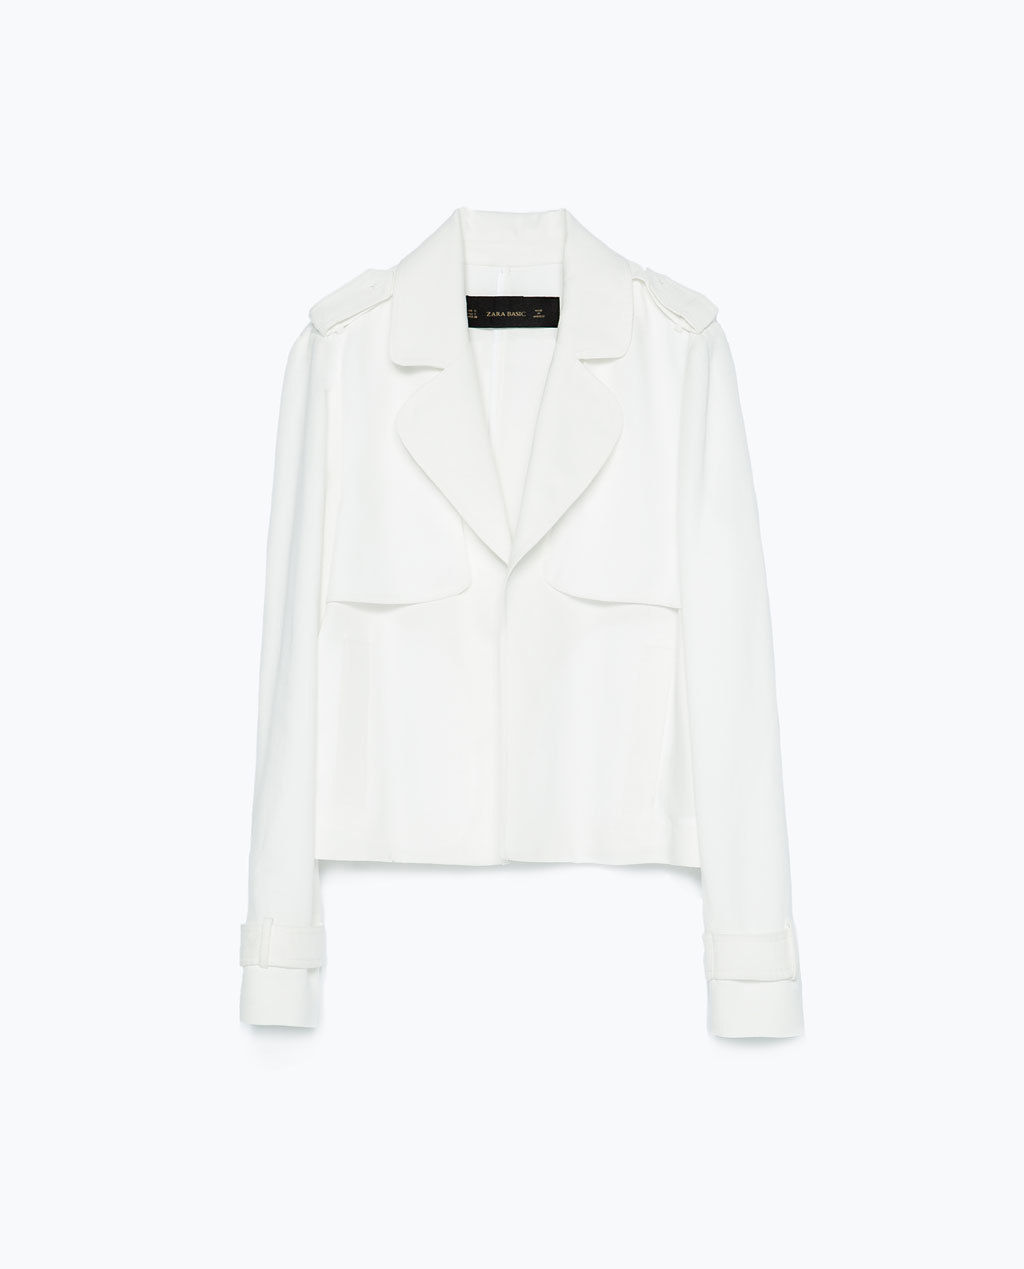 Loose Cut Jacket - pattern: plain; style: single breasted blazer; shoulder detail: obvious epaulette; collar: standard lapel/rever collar; predominant colour: white; occasions: casual, creative work; length: standard; fit: straight cut (boxy); fibres: cotton - 100%; sleeve length: long sleeve; sleeve style: standard; texture group: crepes; collar break: medium; pattern type: fabric; season: s/s 2015; wardrobe: basic